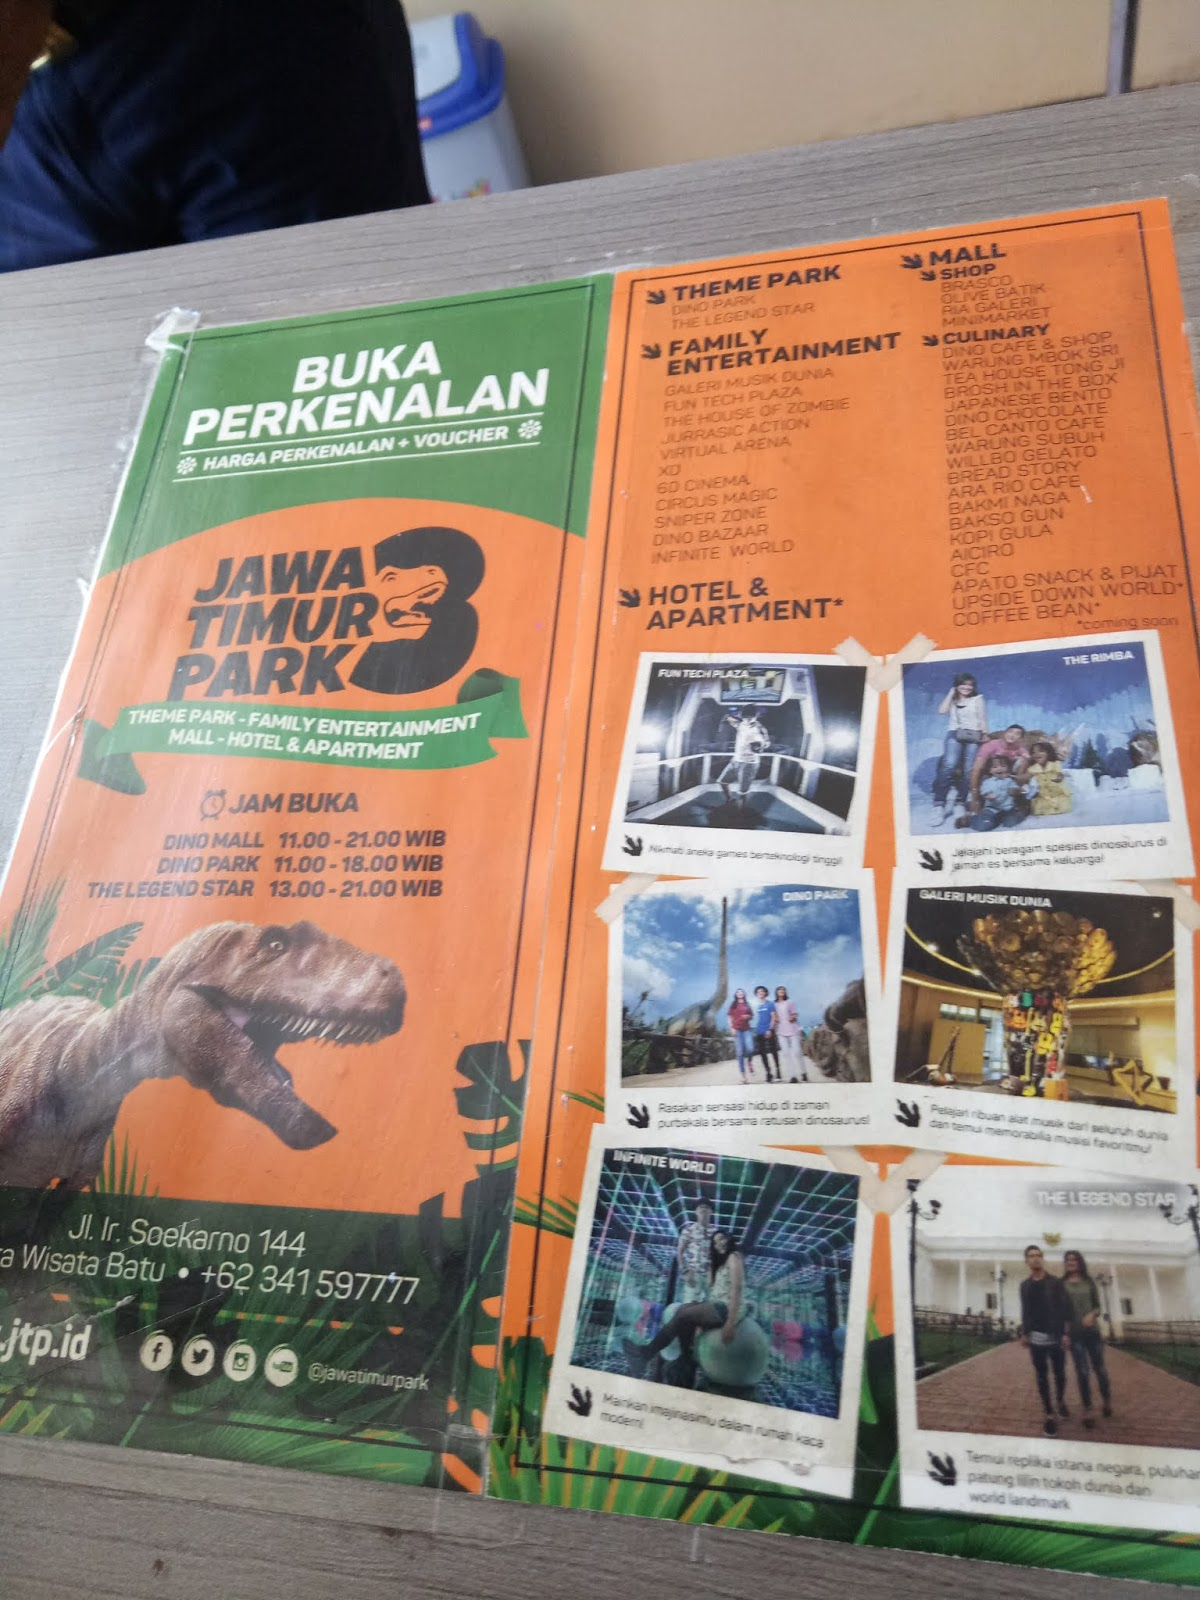 All My Stories Review Jawa Timur Park 3 Dino Park The Legend